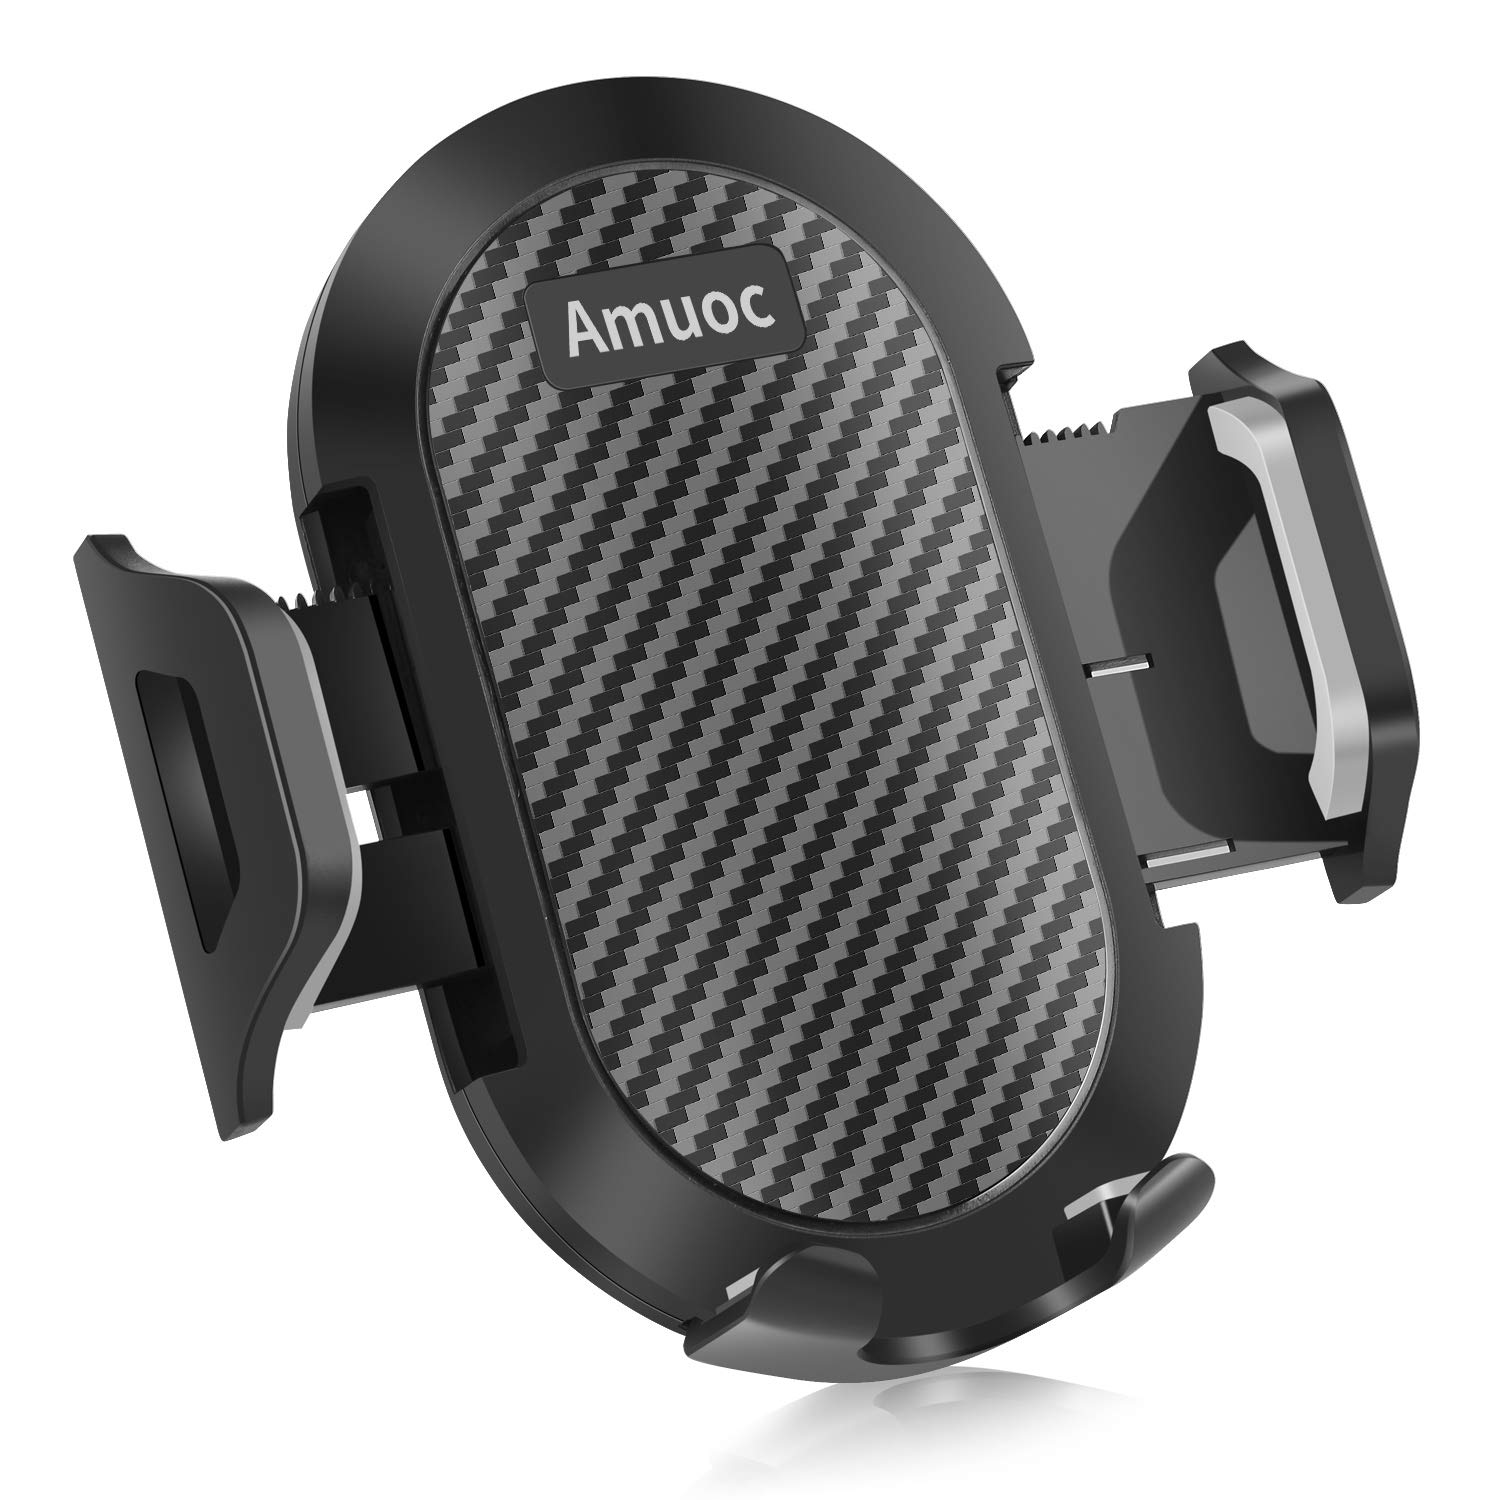 Amuoc Universal Smartphone Car Air Vent Mount Holder Cradle Compatible with iPhone Xs XS Max XR X 8 8+ 7 7+ SE 6s 6+ 6 5s 4 Samsung and All Smartphones (Black)